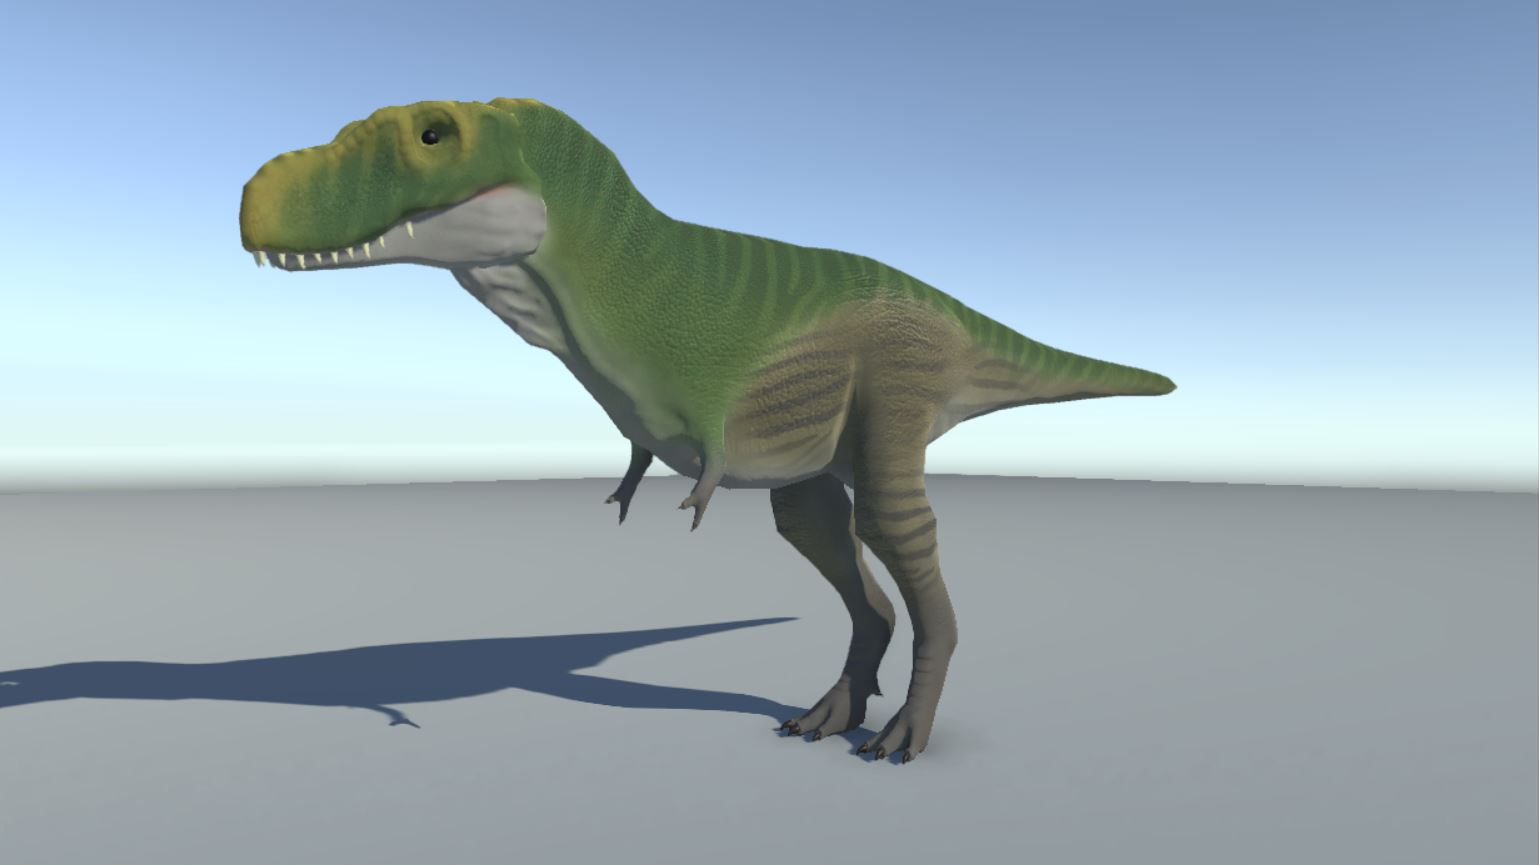 this is an Older version of our Appalachiosaurus